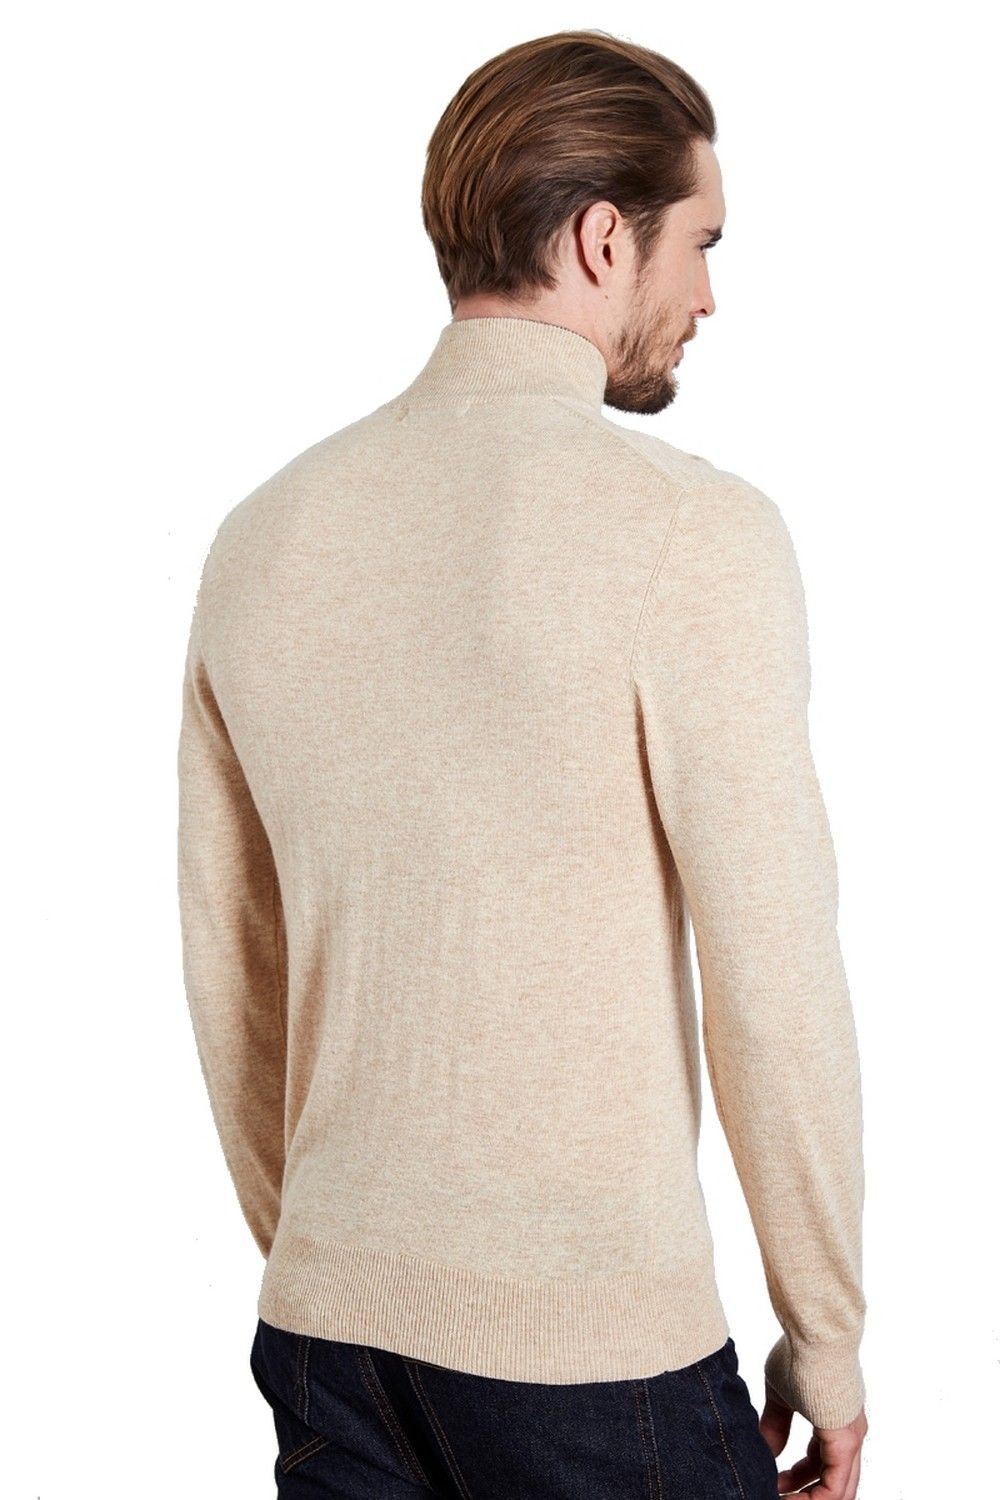 William De Faye High Neck Two-tone Collar Sweater with Buttons in Beige